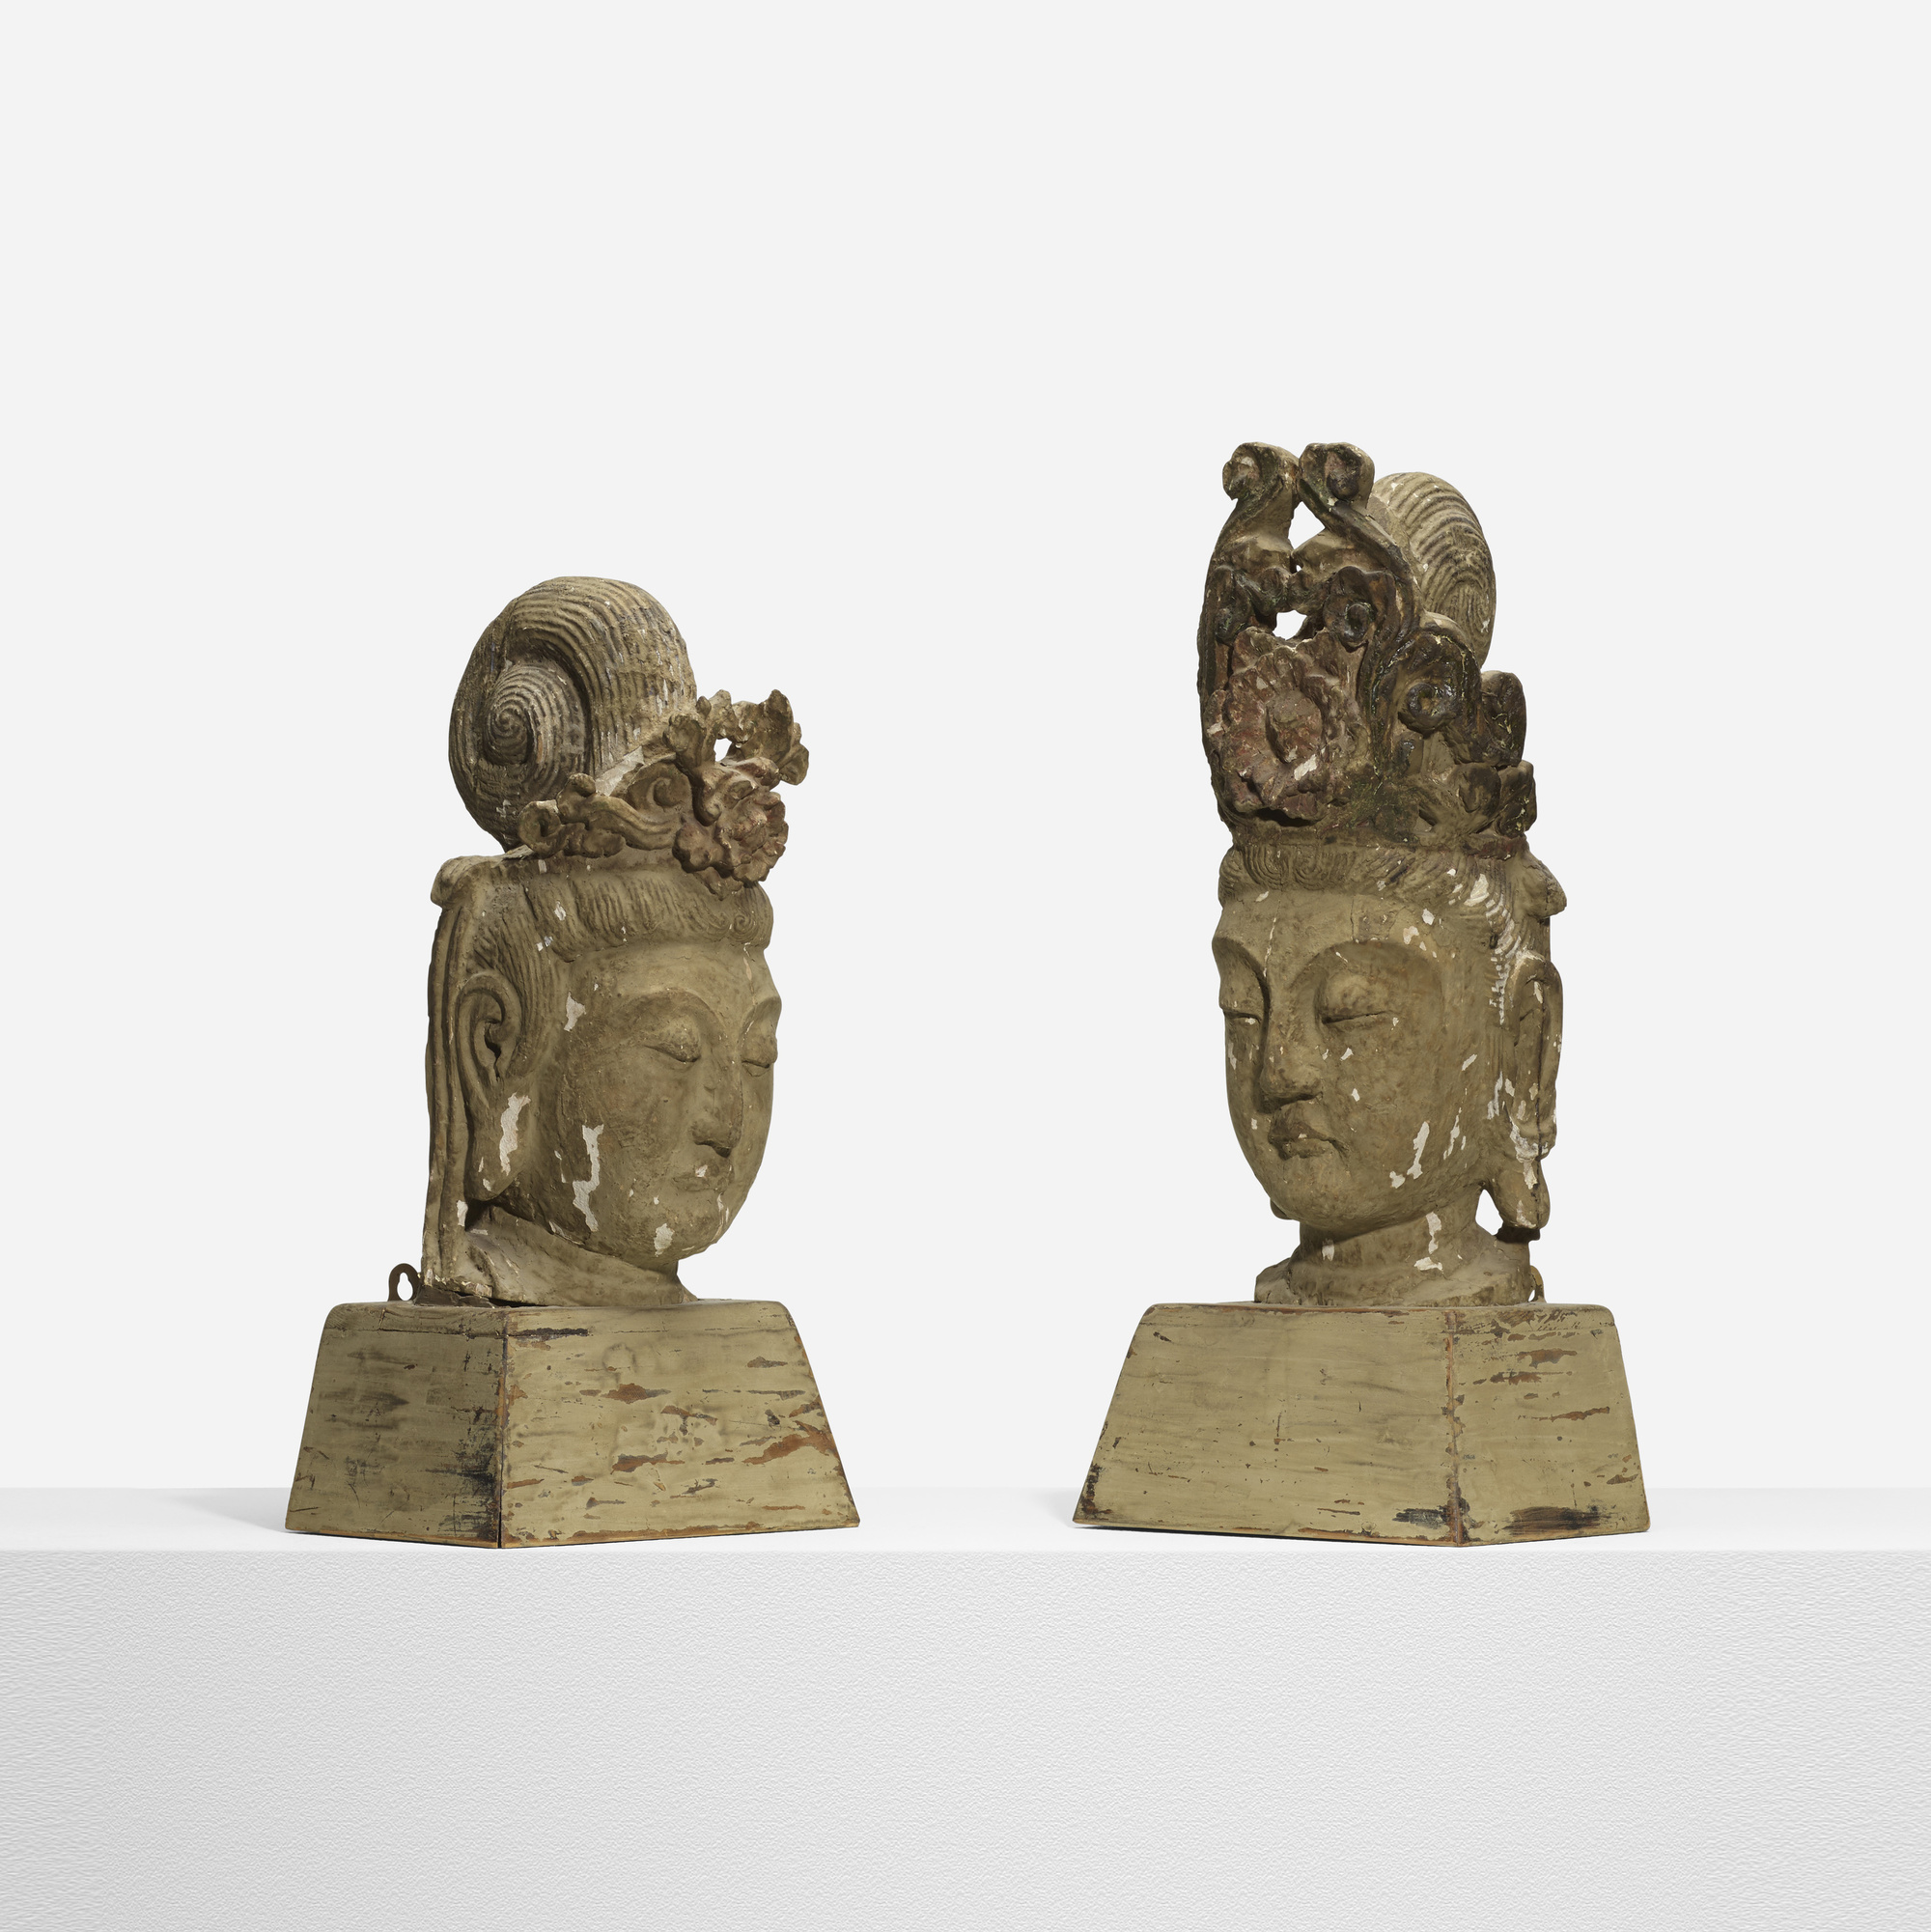 197: Selected by Samuel Marx / pair of Buddhas from the Morton D. May House (1 of 3)